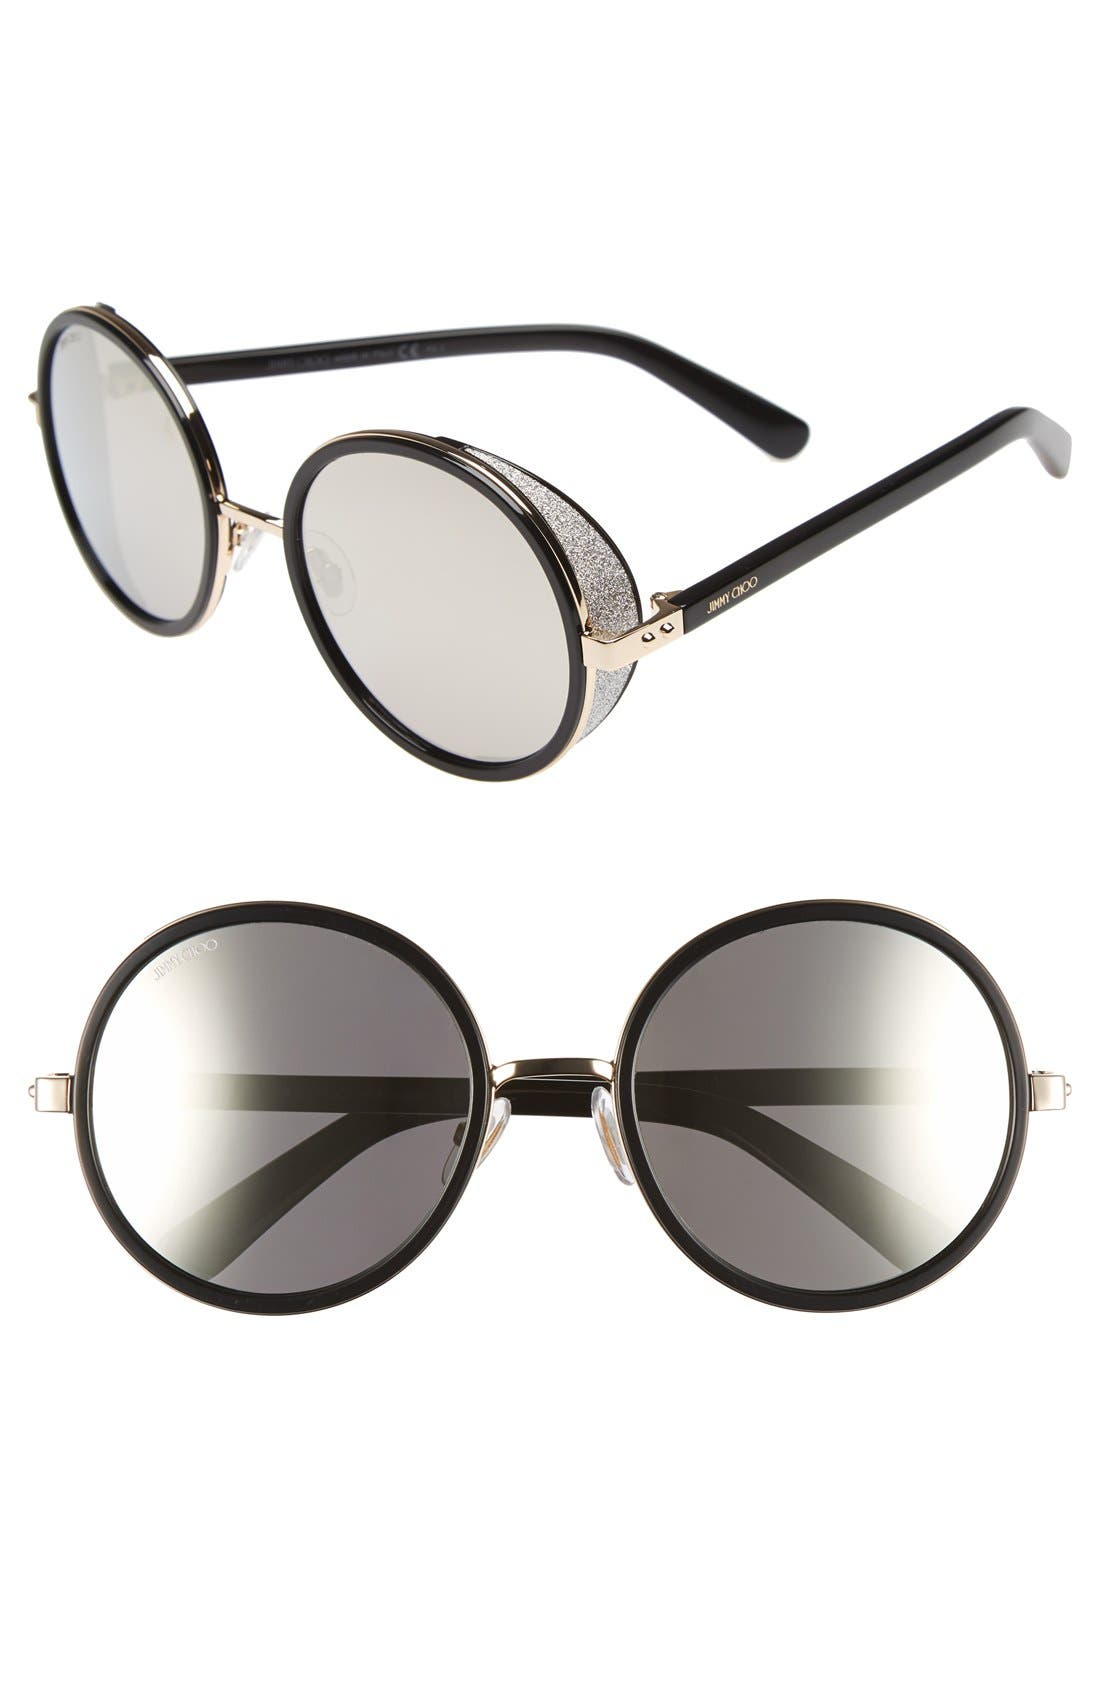 JIMMY CHOO Andies 54mm Round Sunglasses